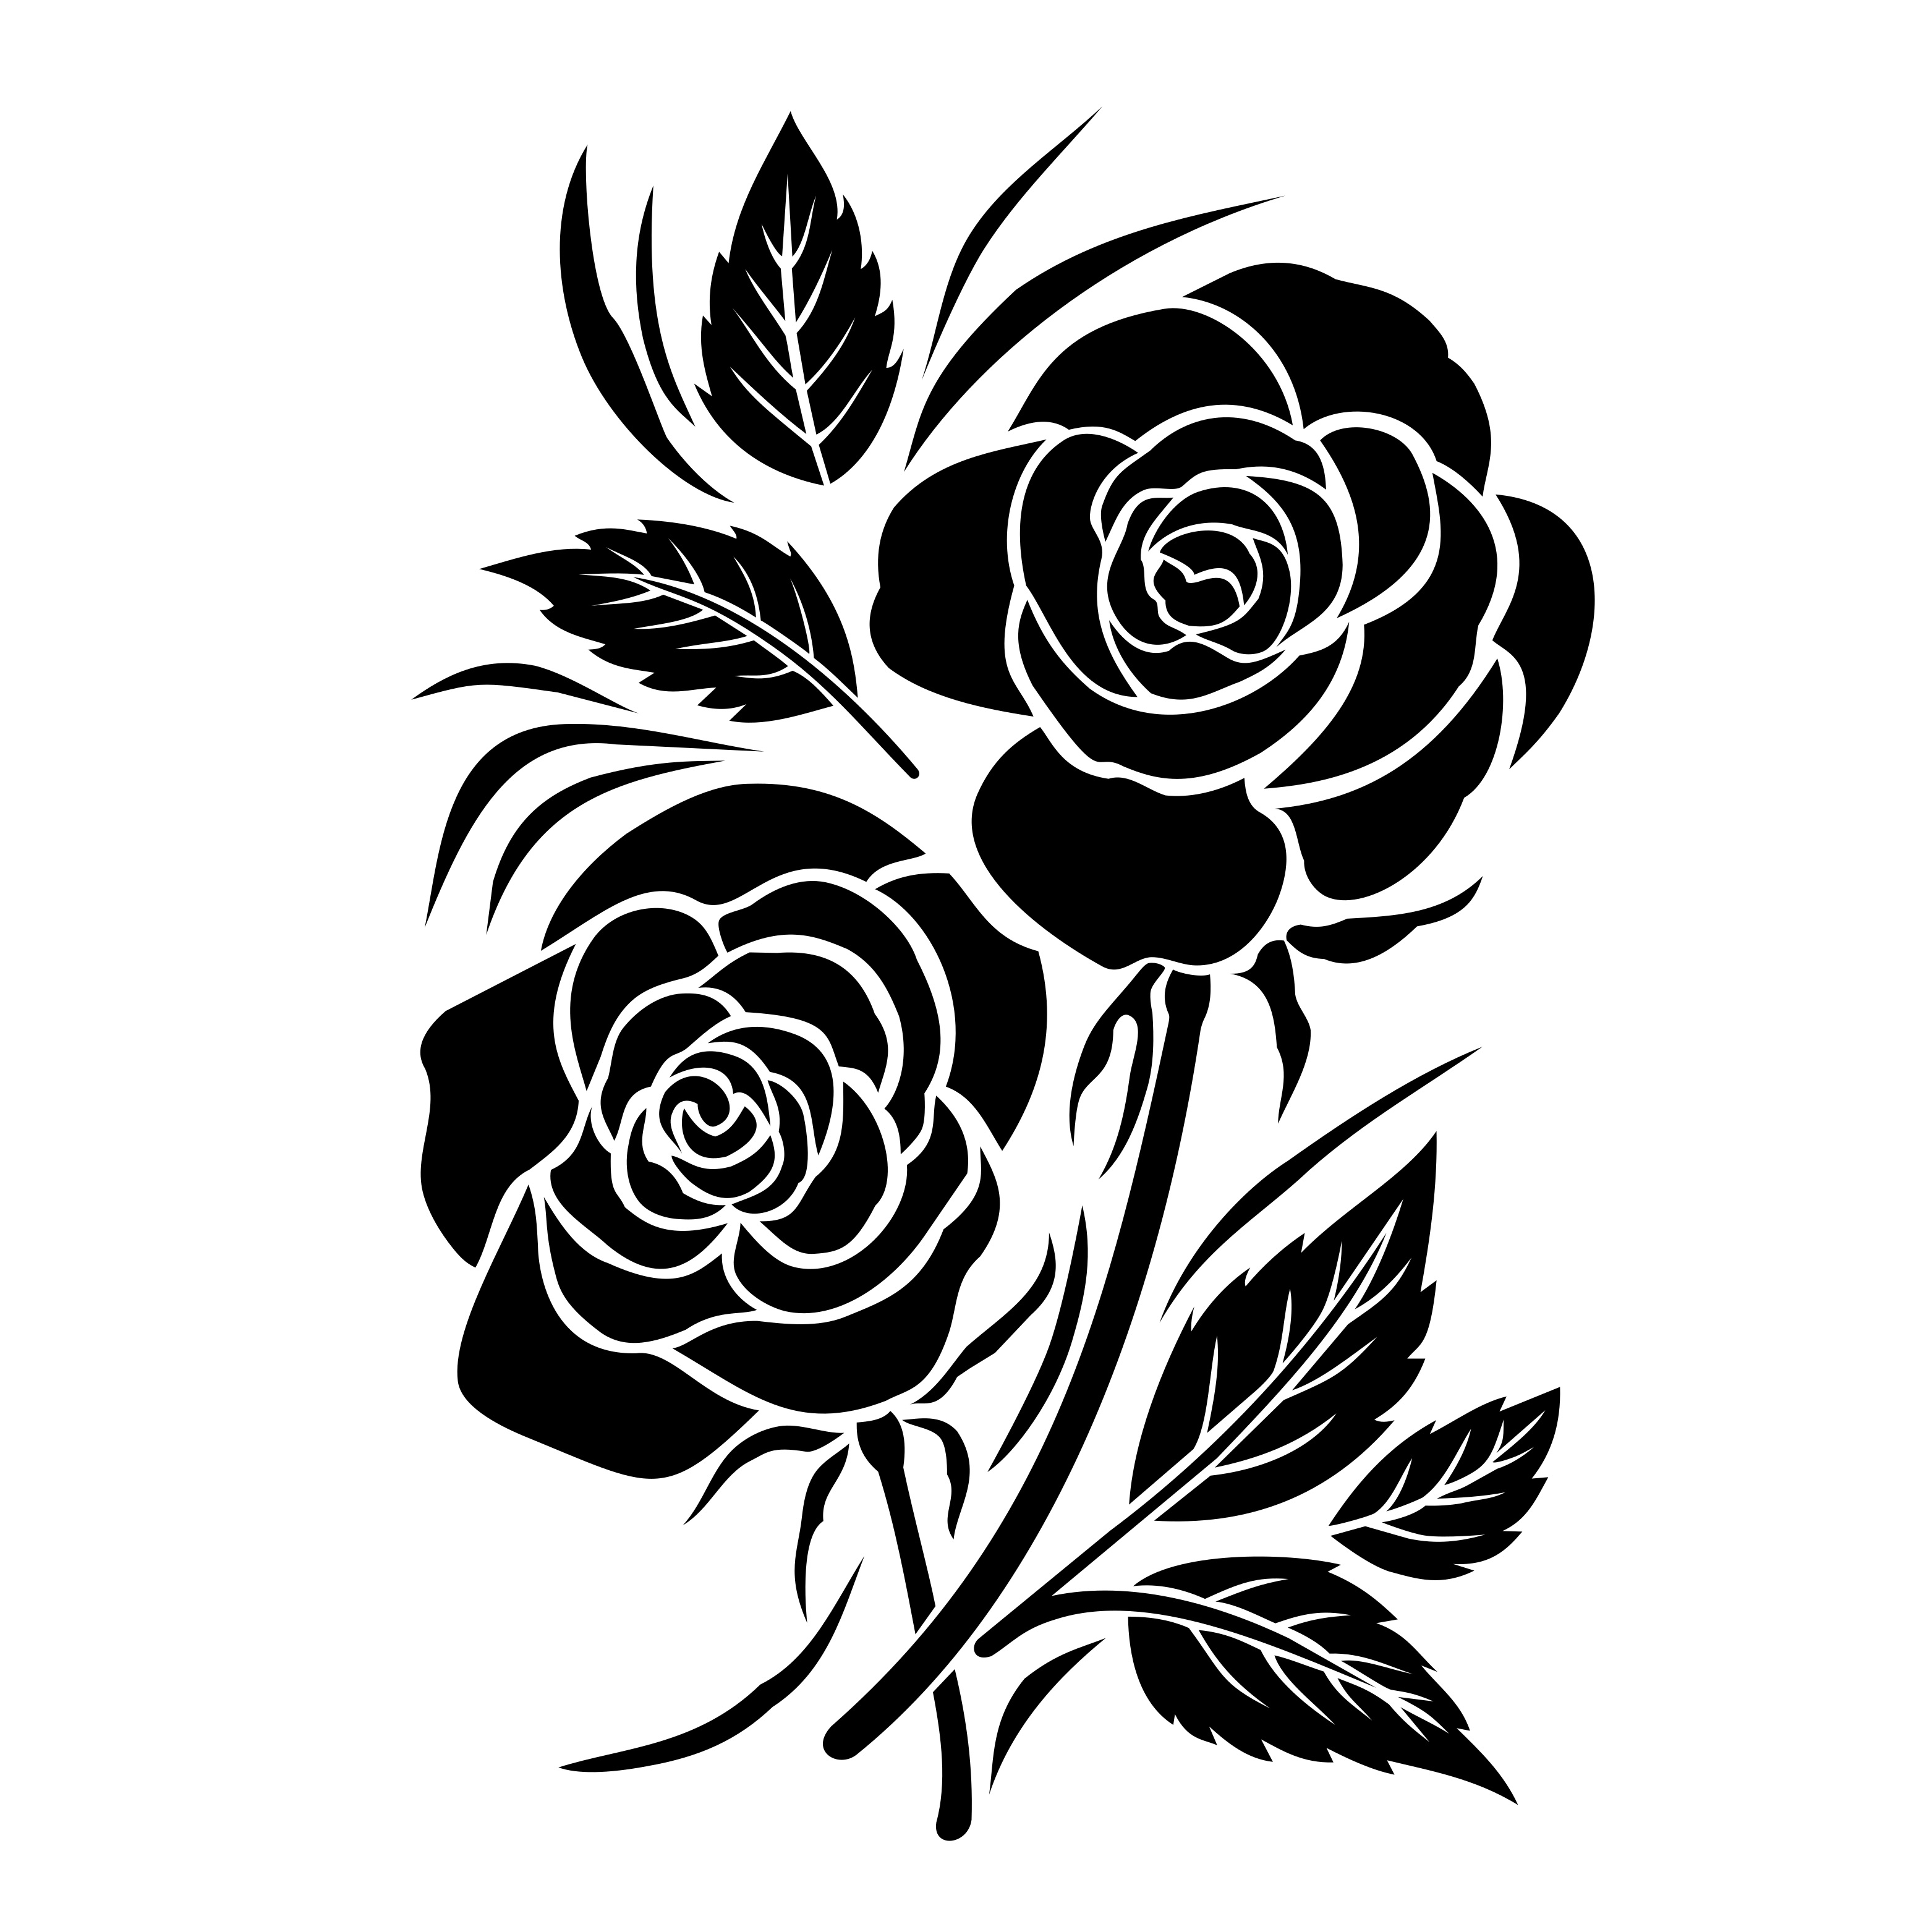 Rose flowers silhouette svg rose florals silhouette svg flower rose flowers silhouette svg rose florals silhouette svg flower bouquets svg graphic by little craft fun creative fabrica izmirmasajfo